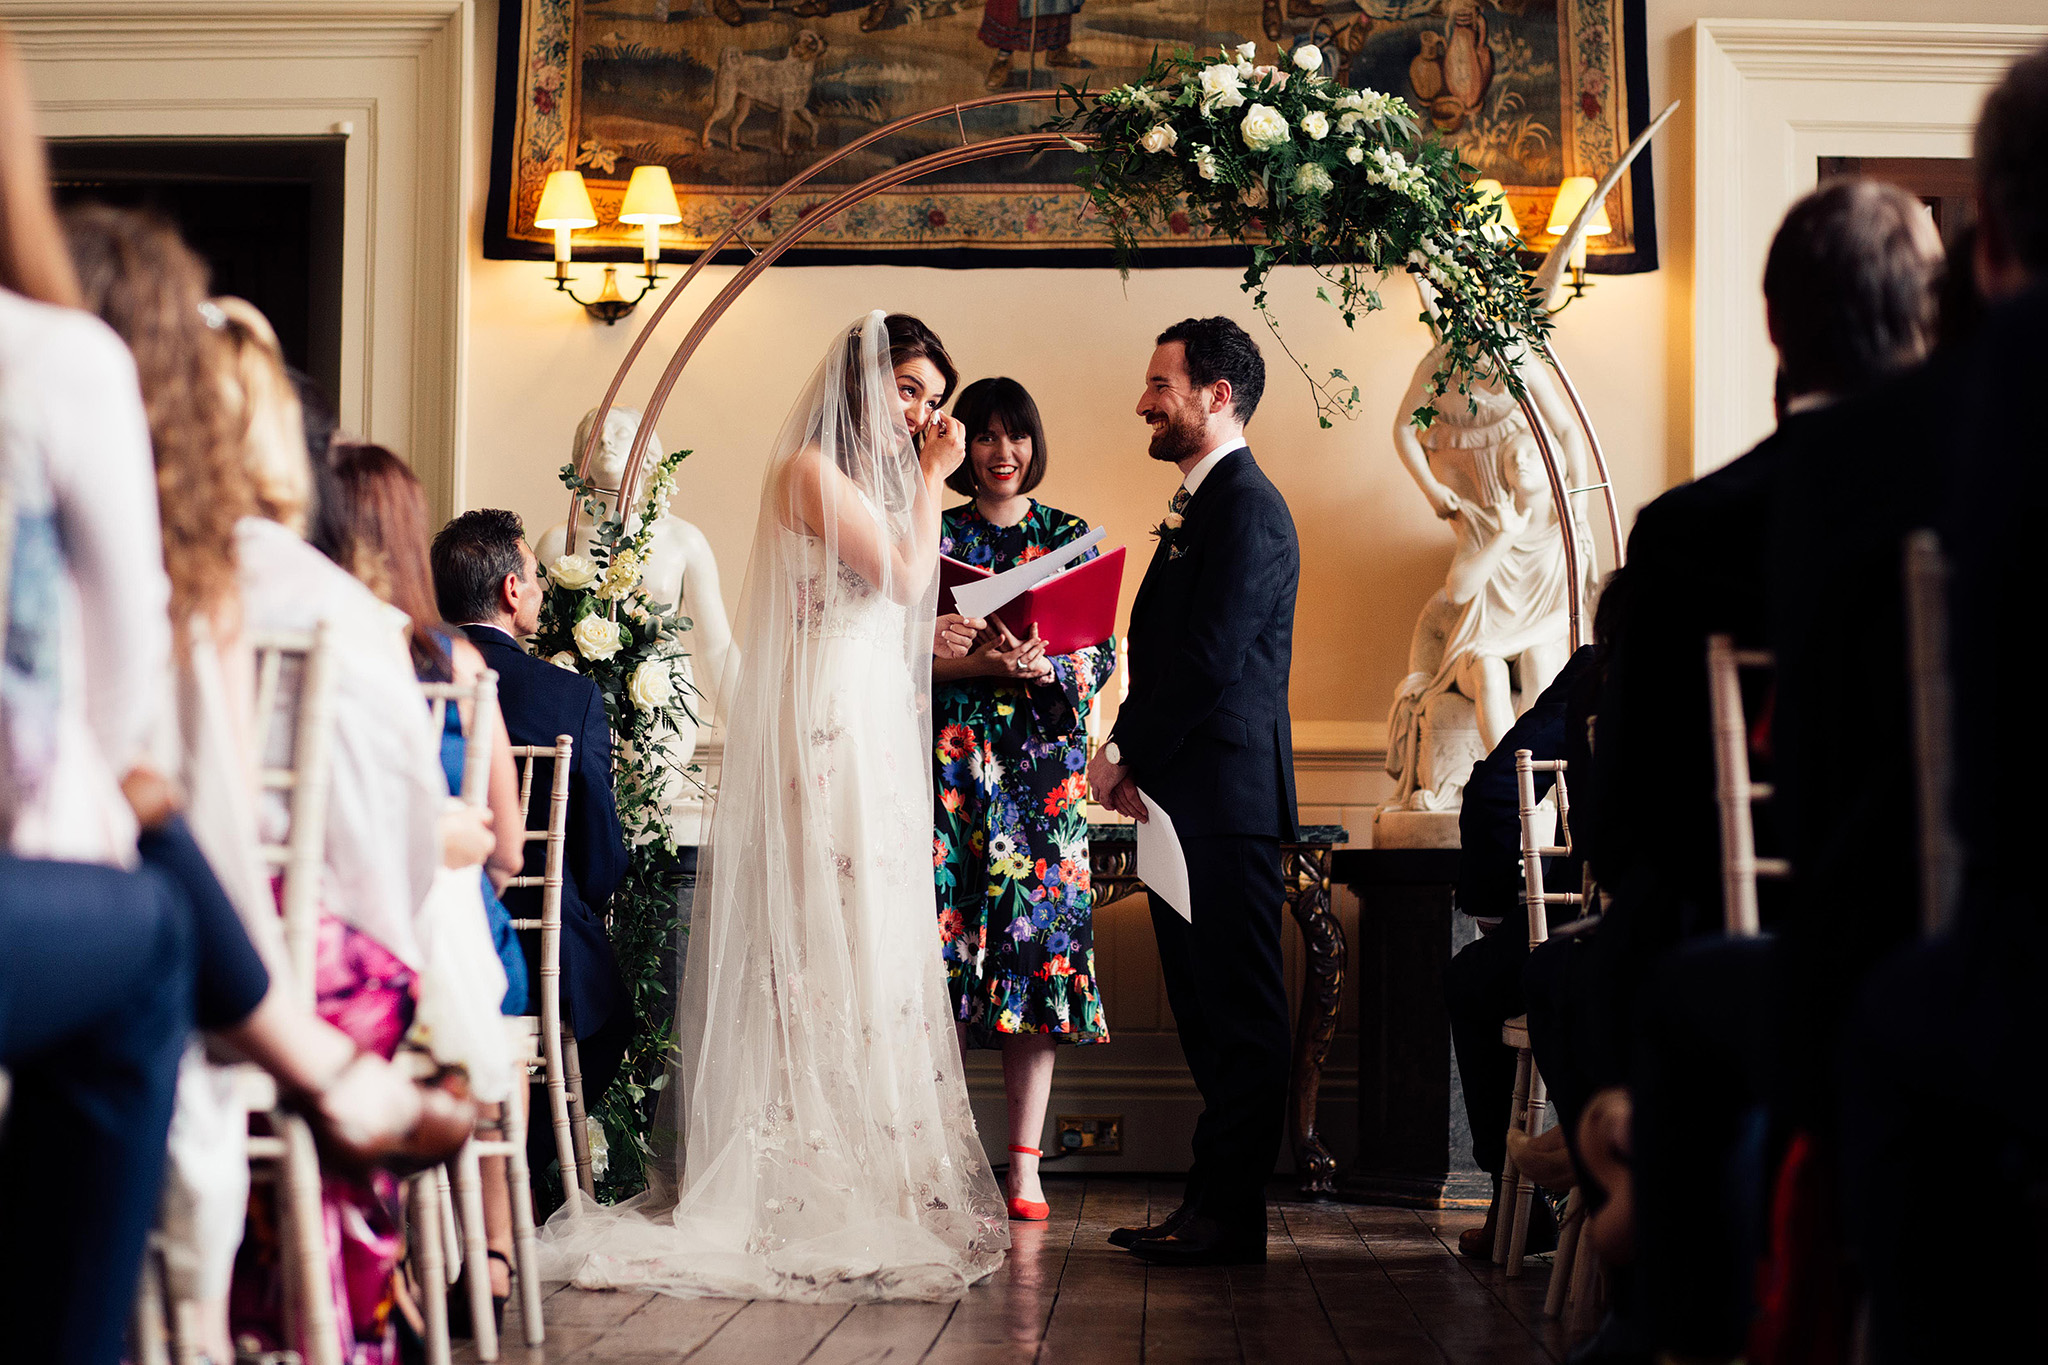 Natasha and Dan getting emotional reading their personal vows to each other.   Image by Harry J Michael